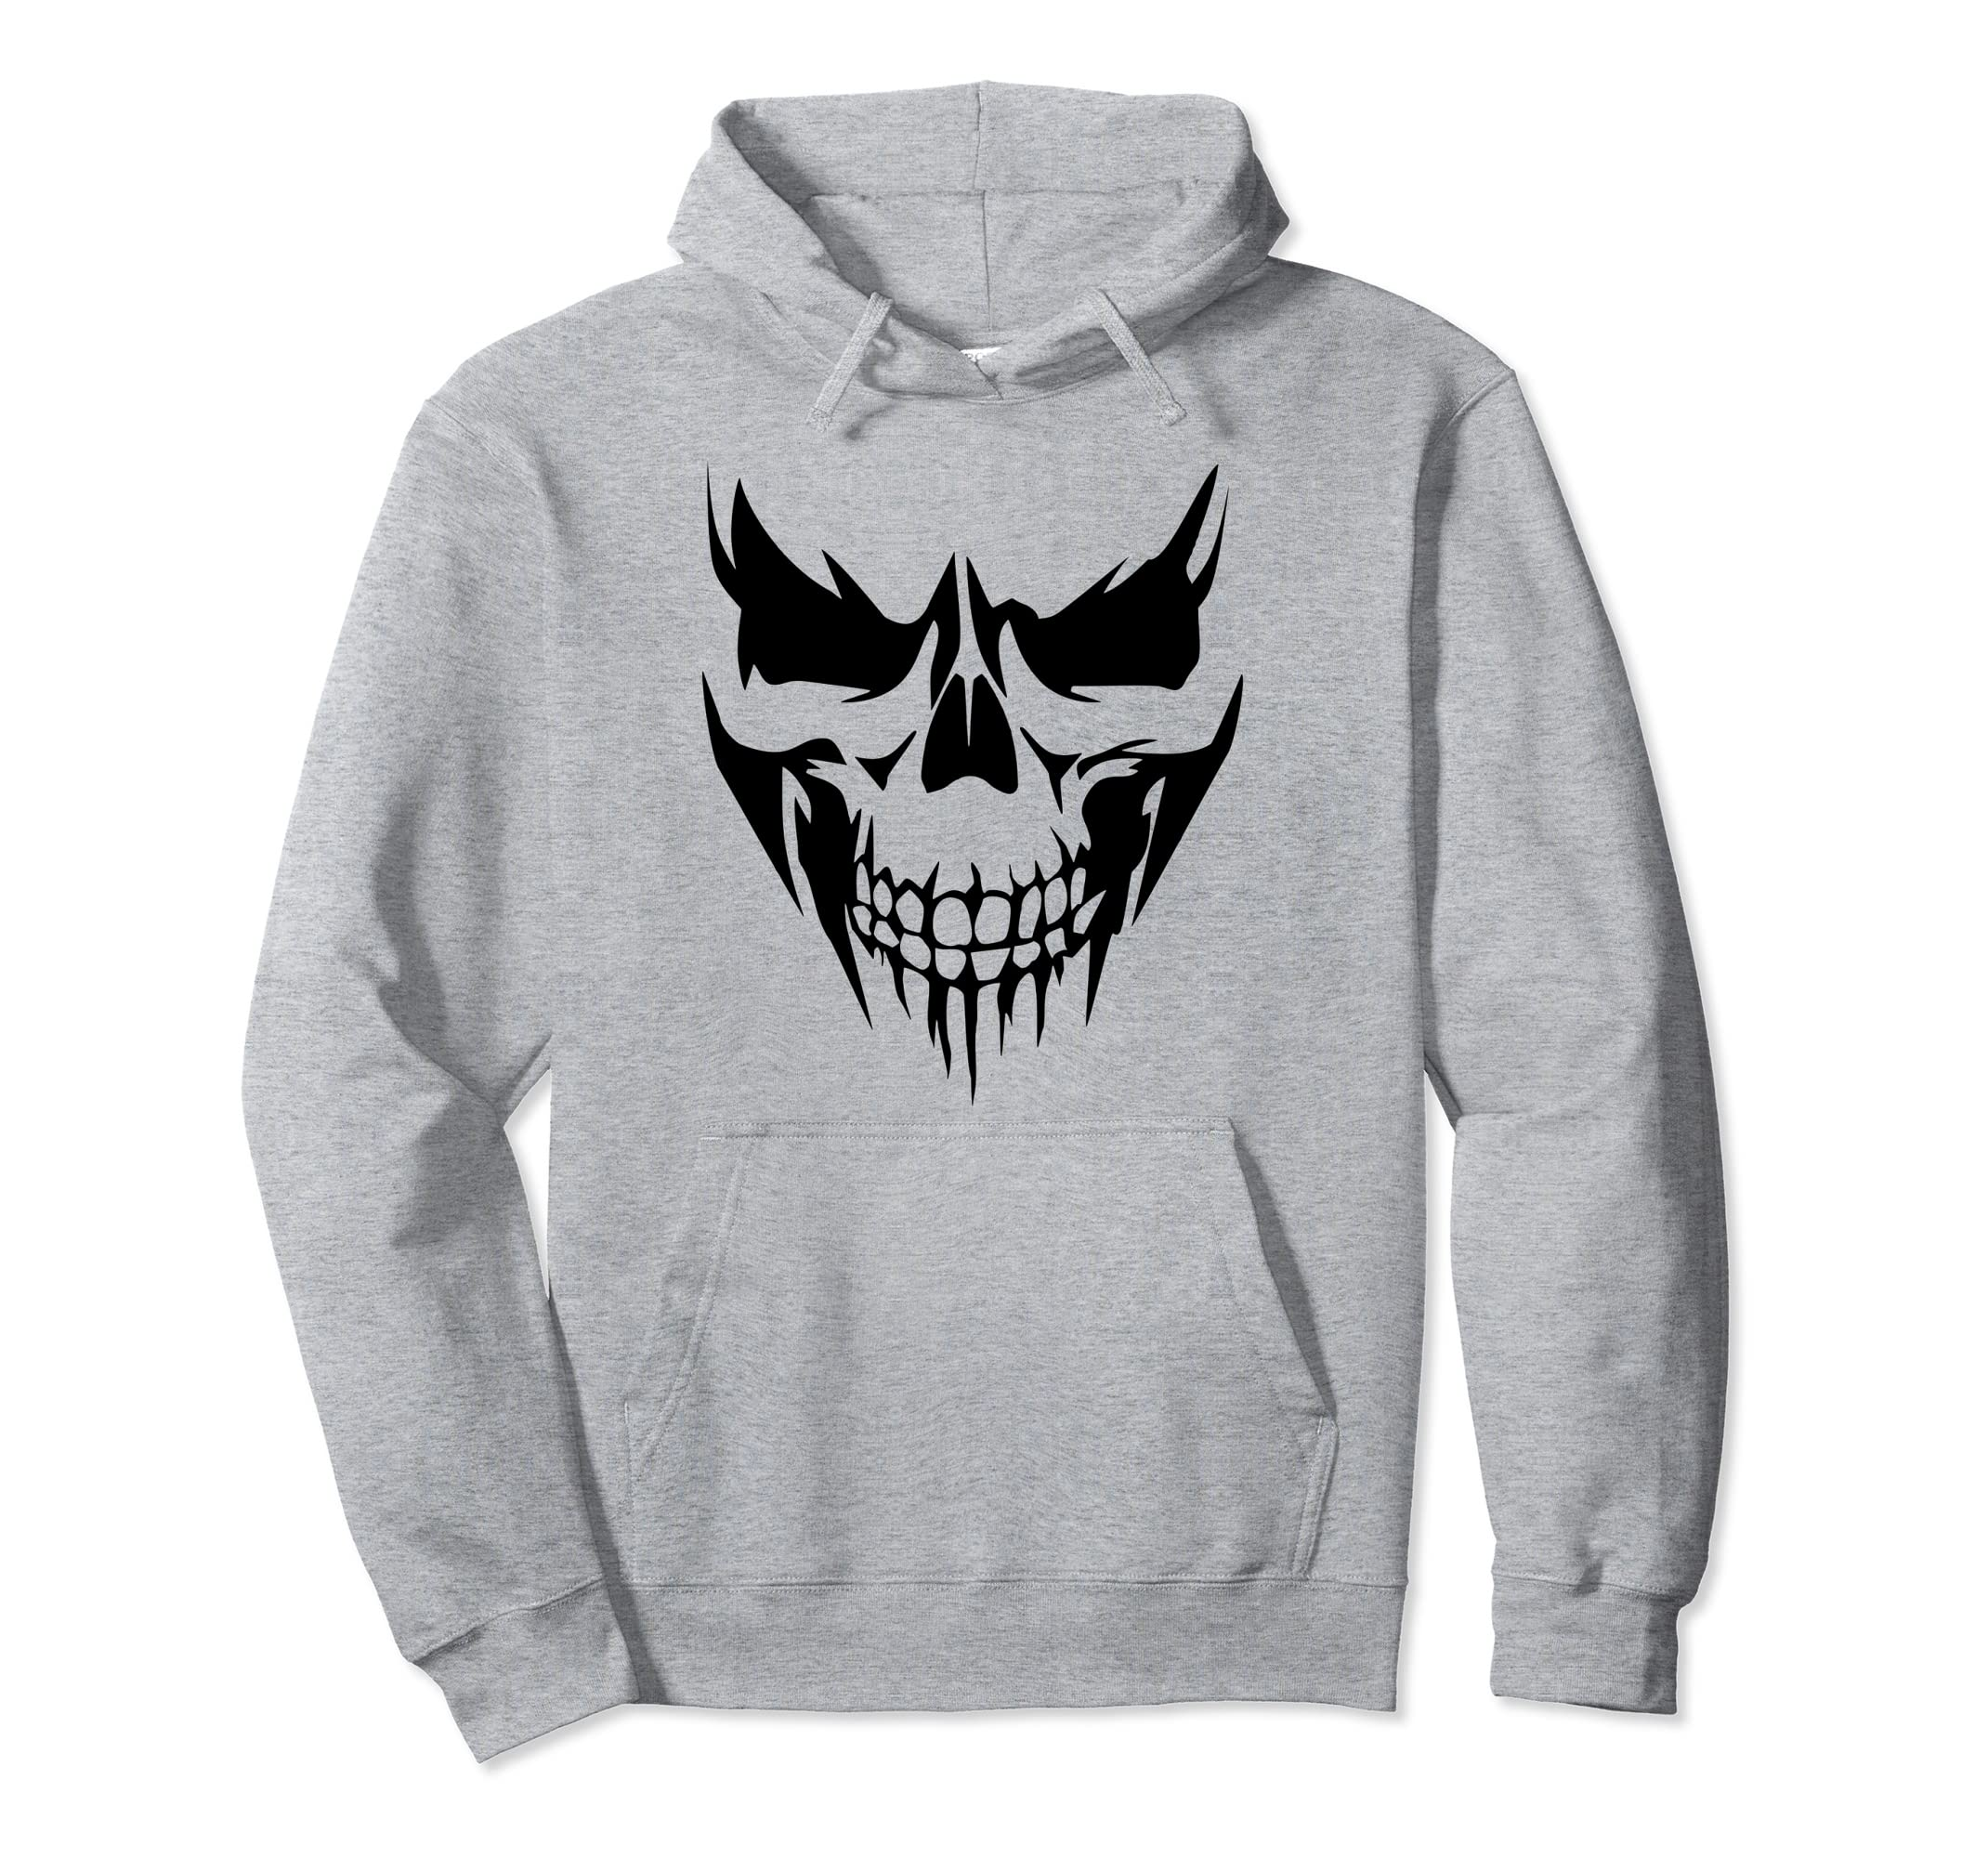 Amazon.com: SKULL DARK DEMON DEMONIO INFERNAL REAL DEAD FACE SHIRT: Clothing